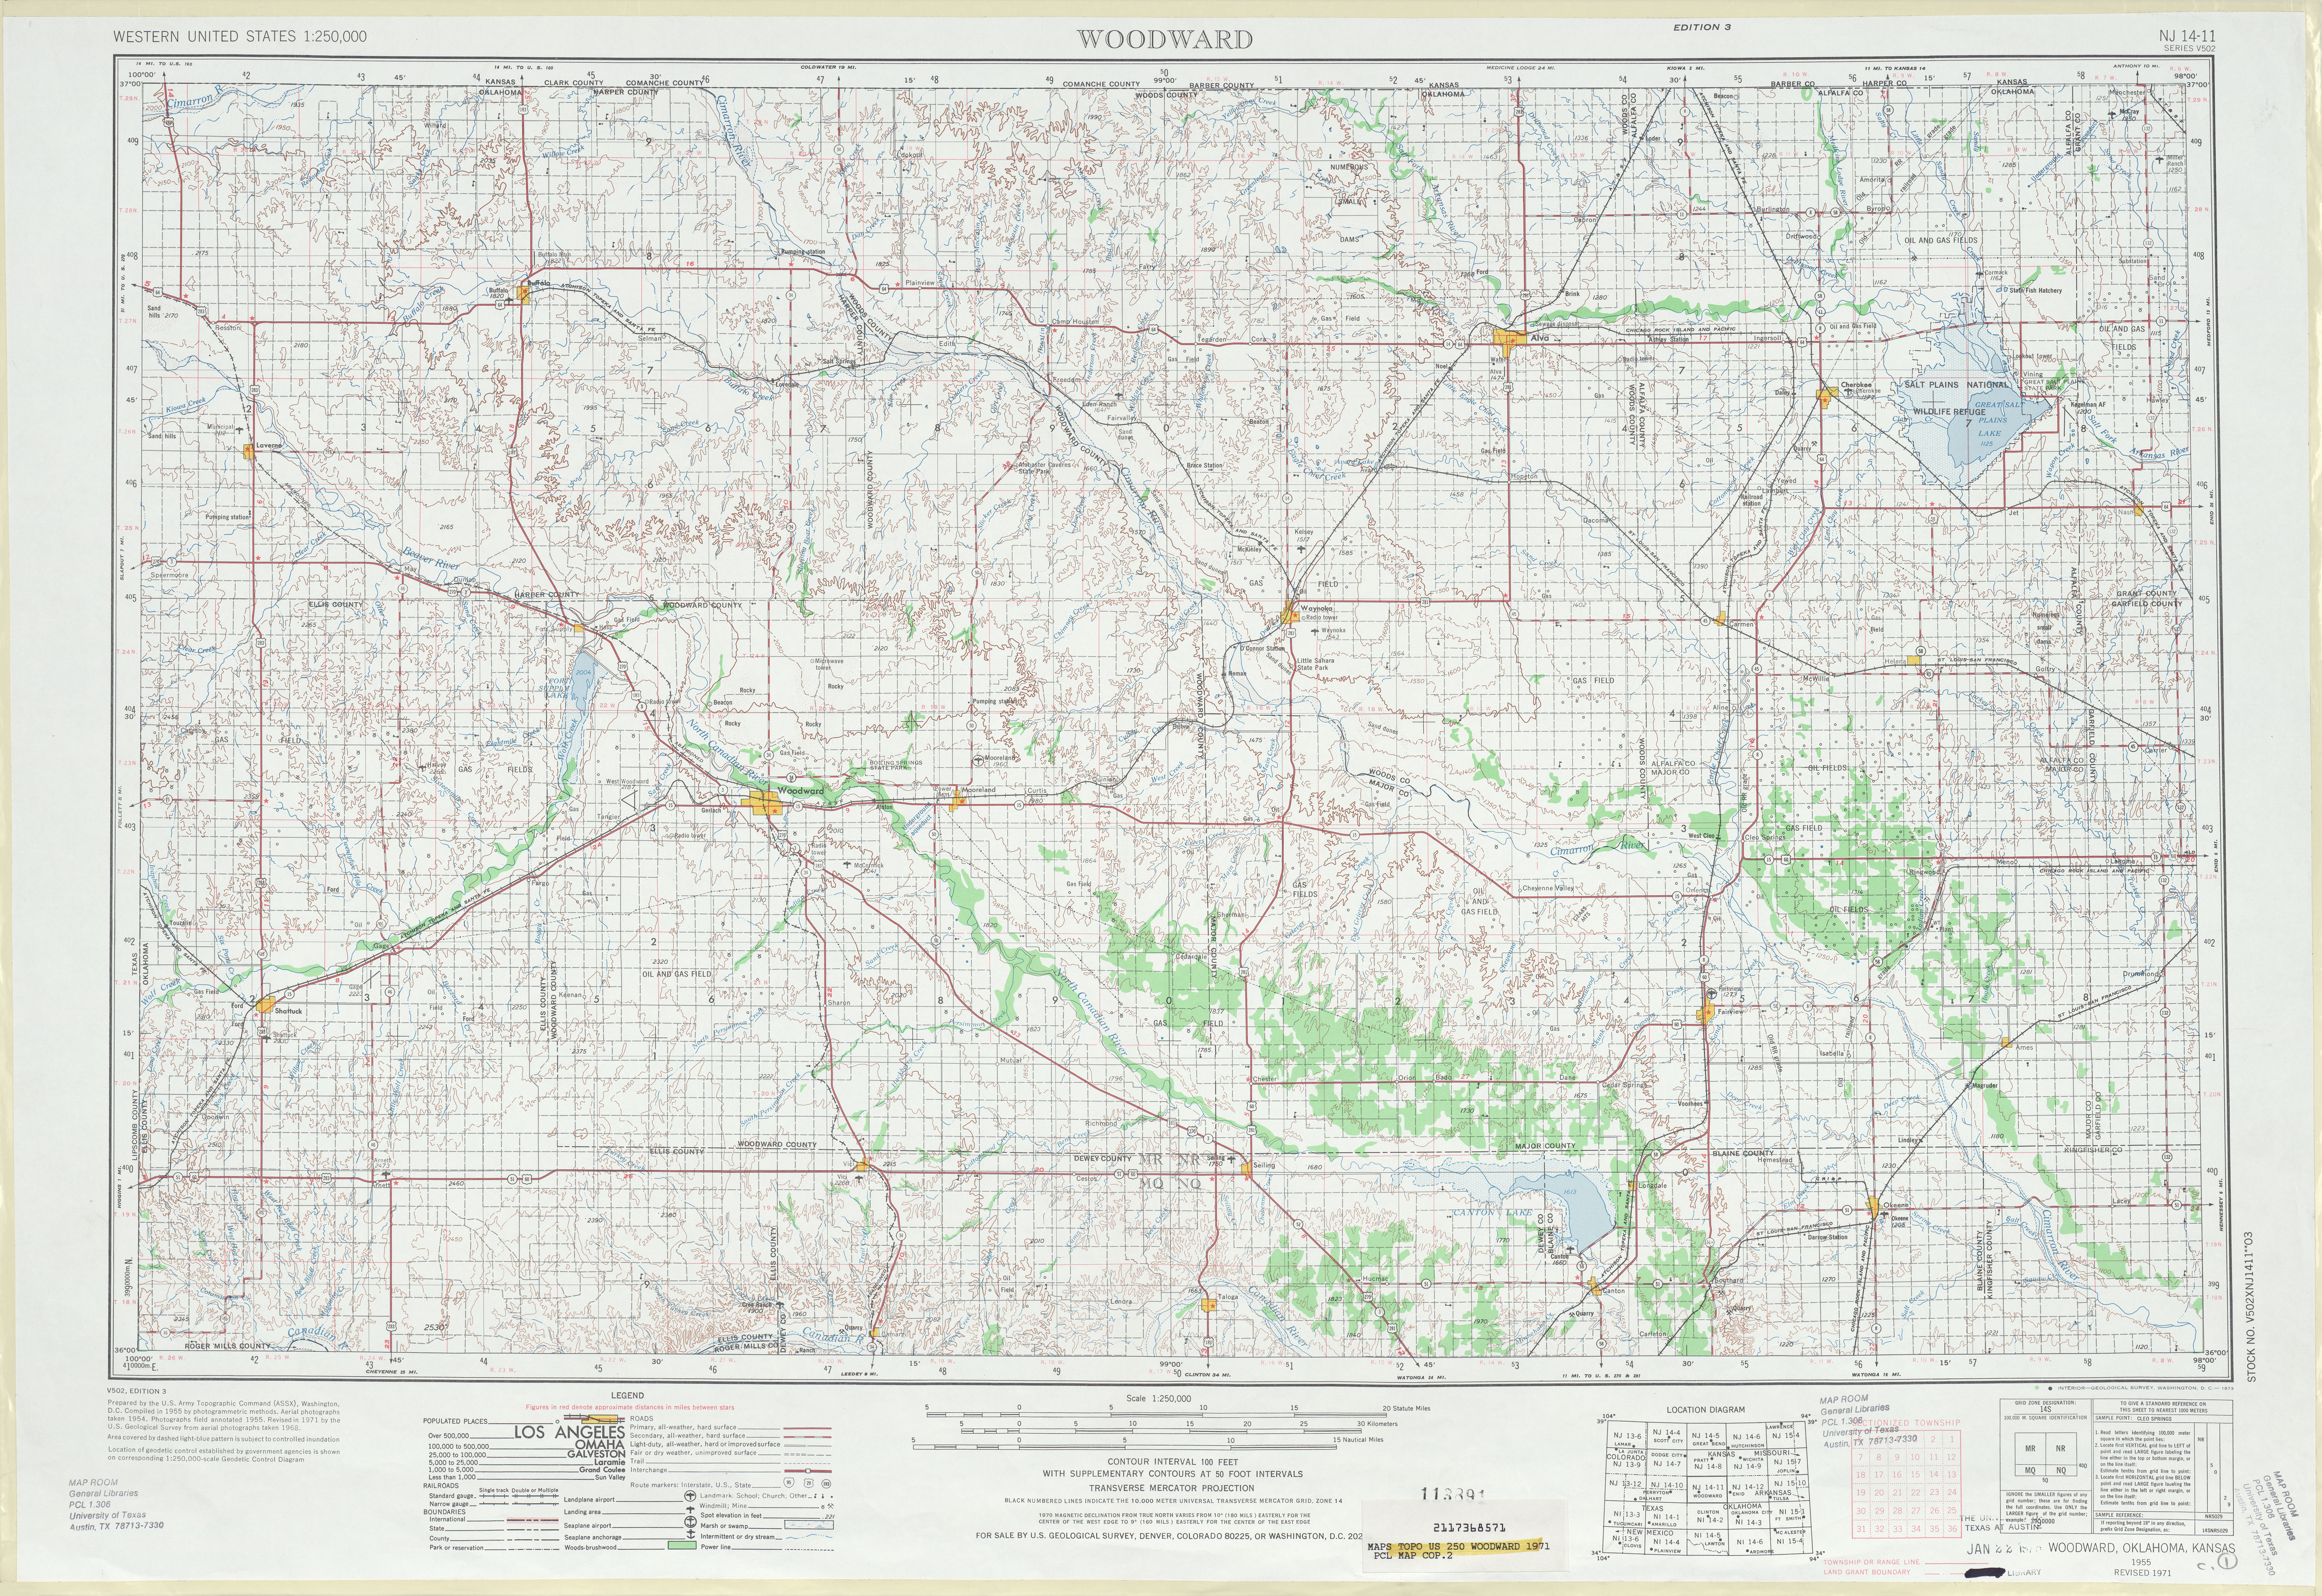 Woodward Topographic Map Sheet, United States 1971